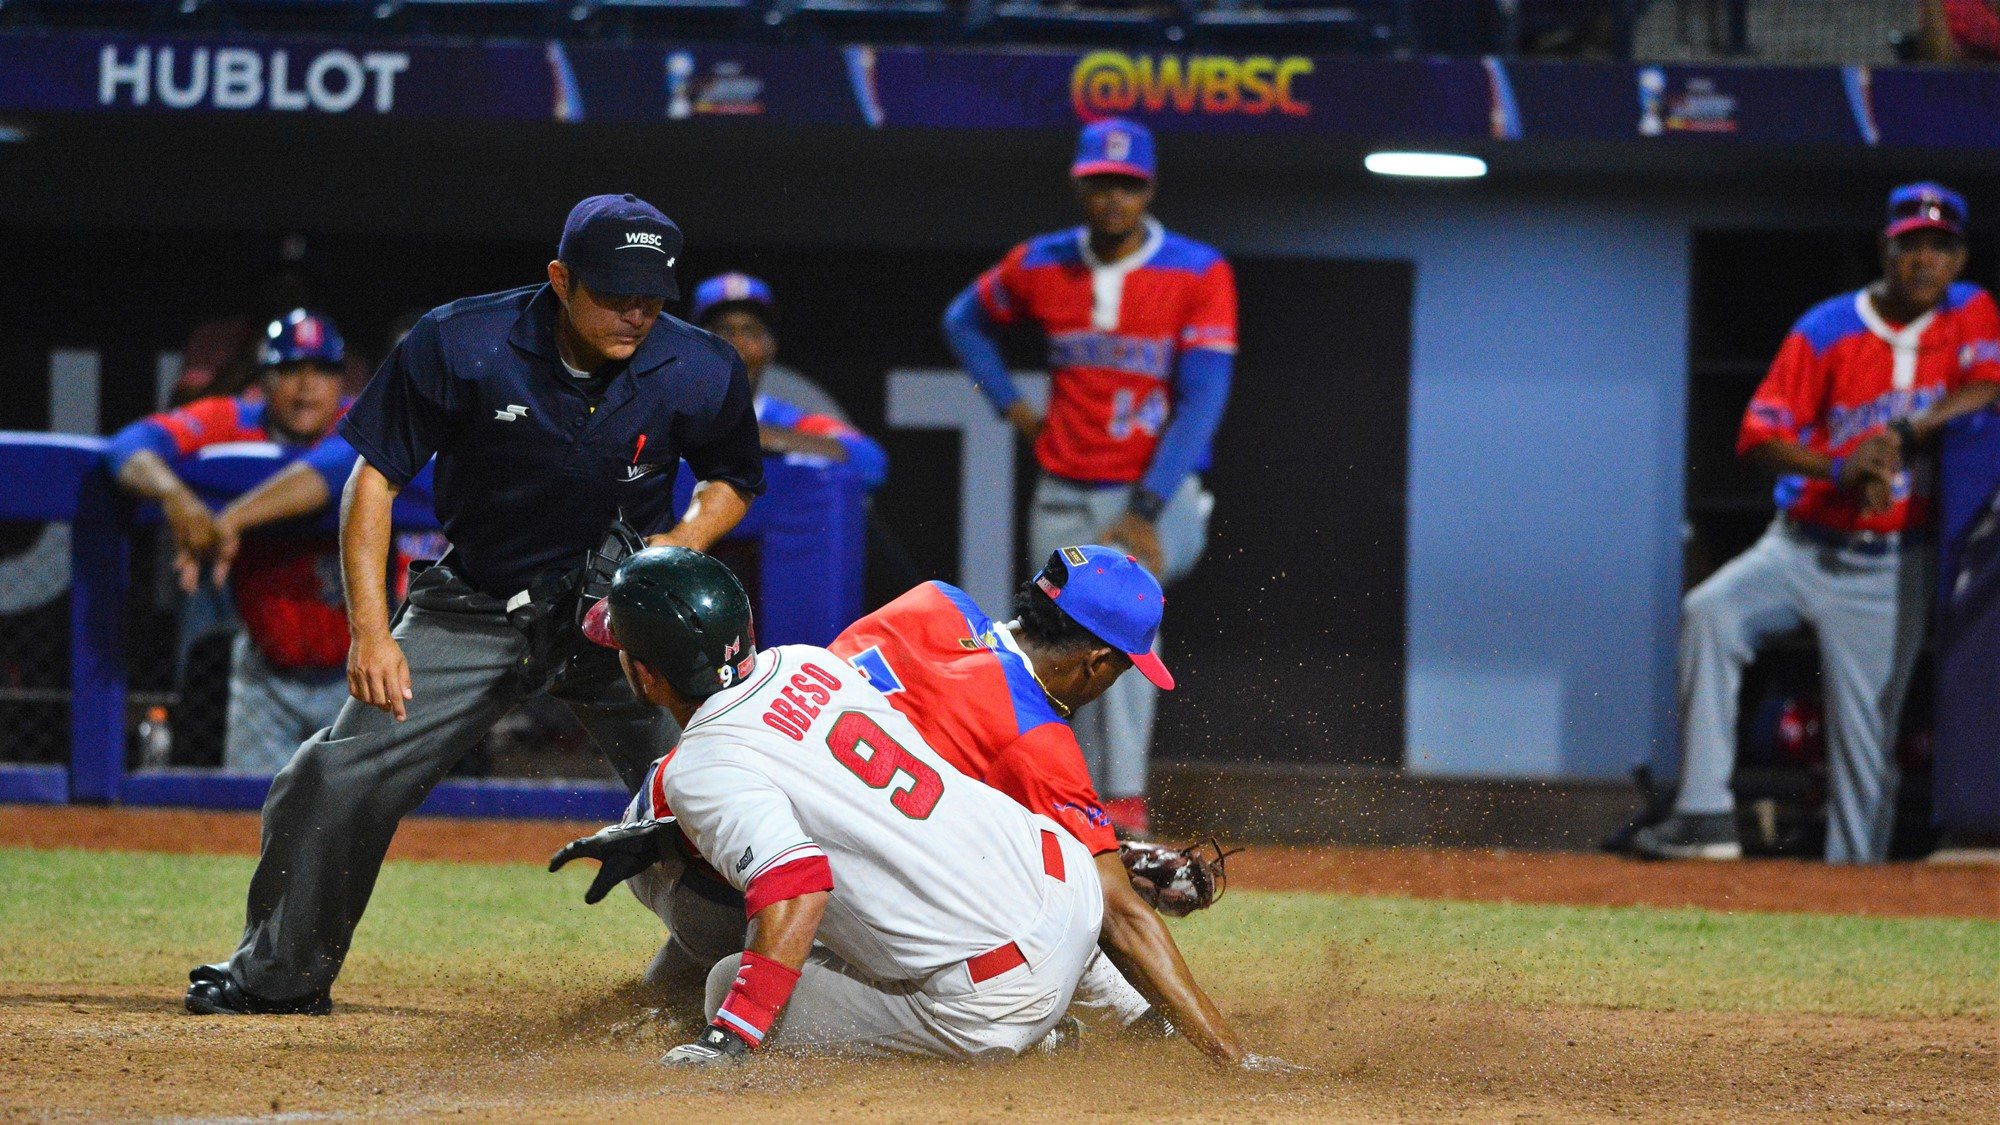 Norberto Obeso tagged for the out at home by Eduardo del Rosario